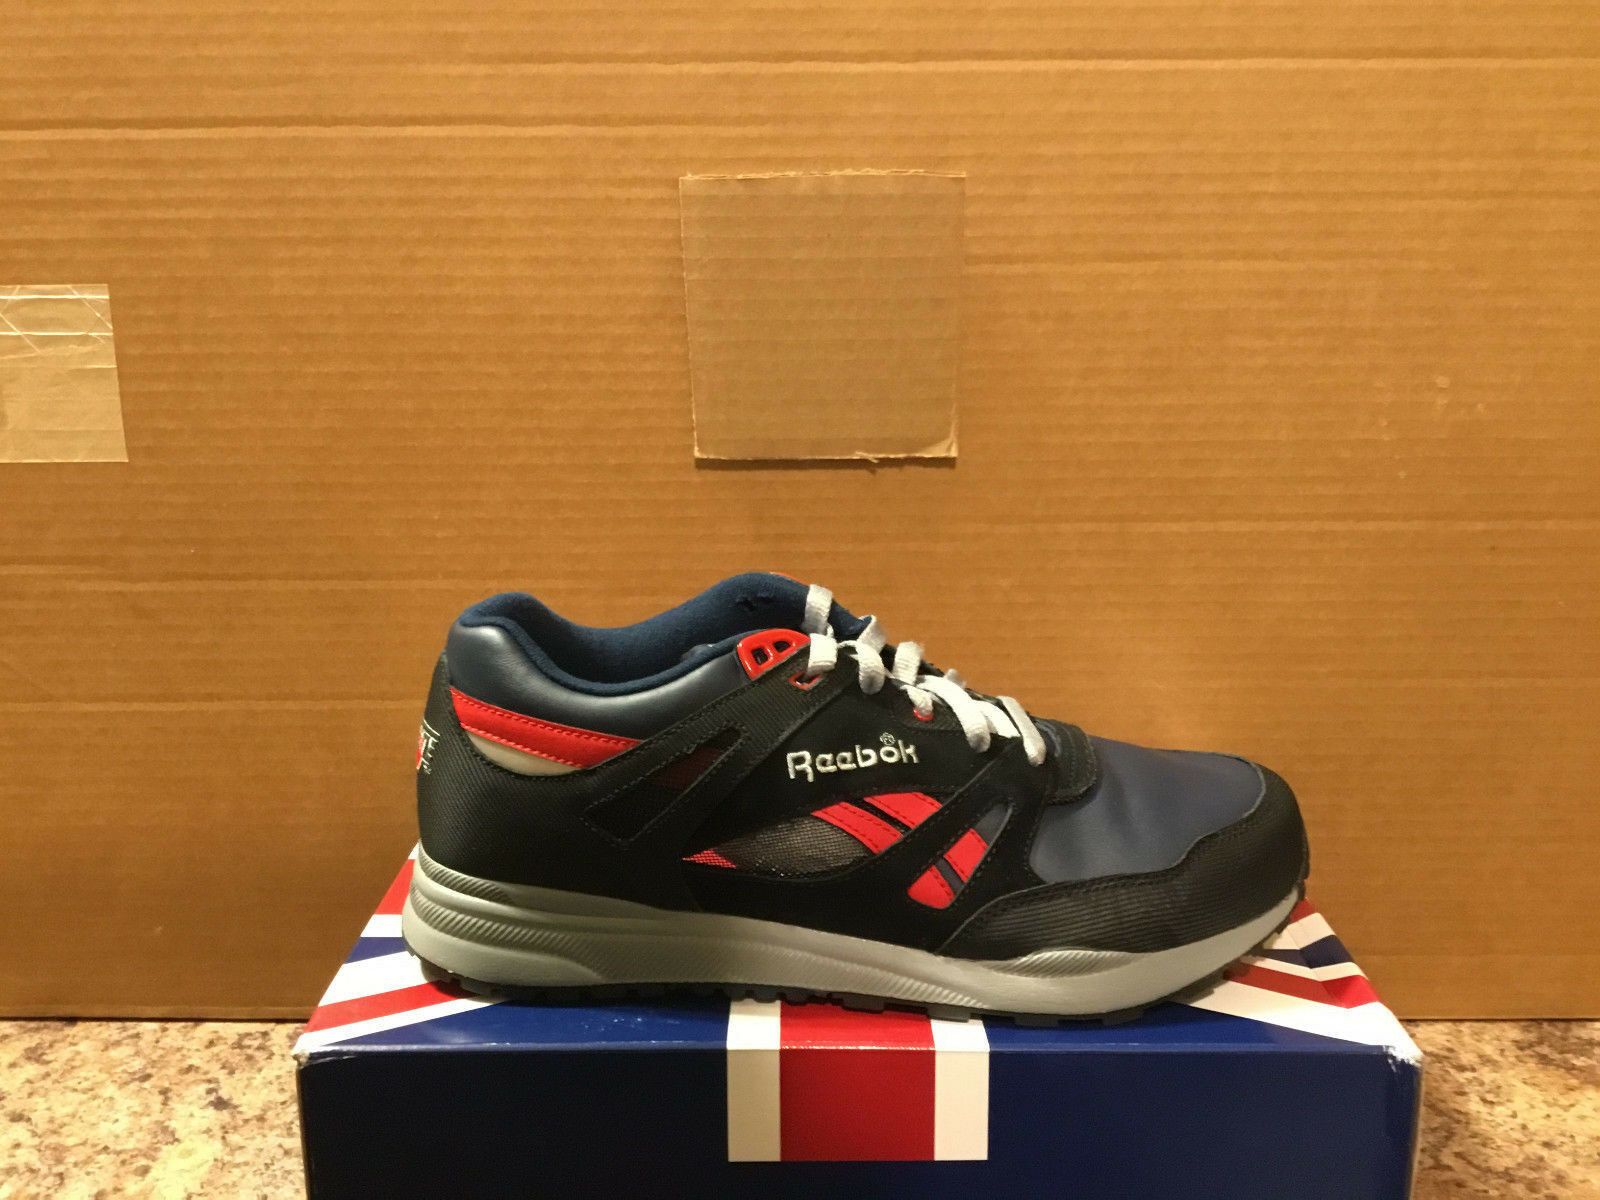 REEBOK VENTILATOR style 165462 men's size US10-HARD TOO FIND COLORWAY